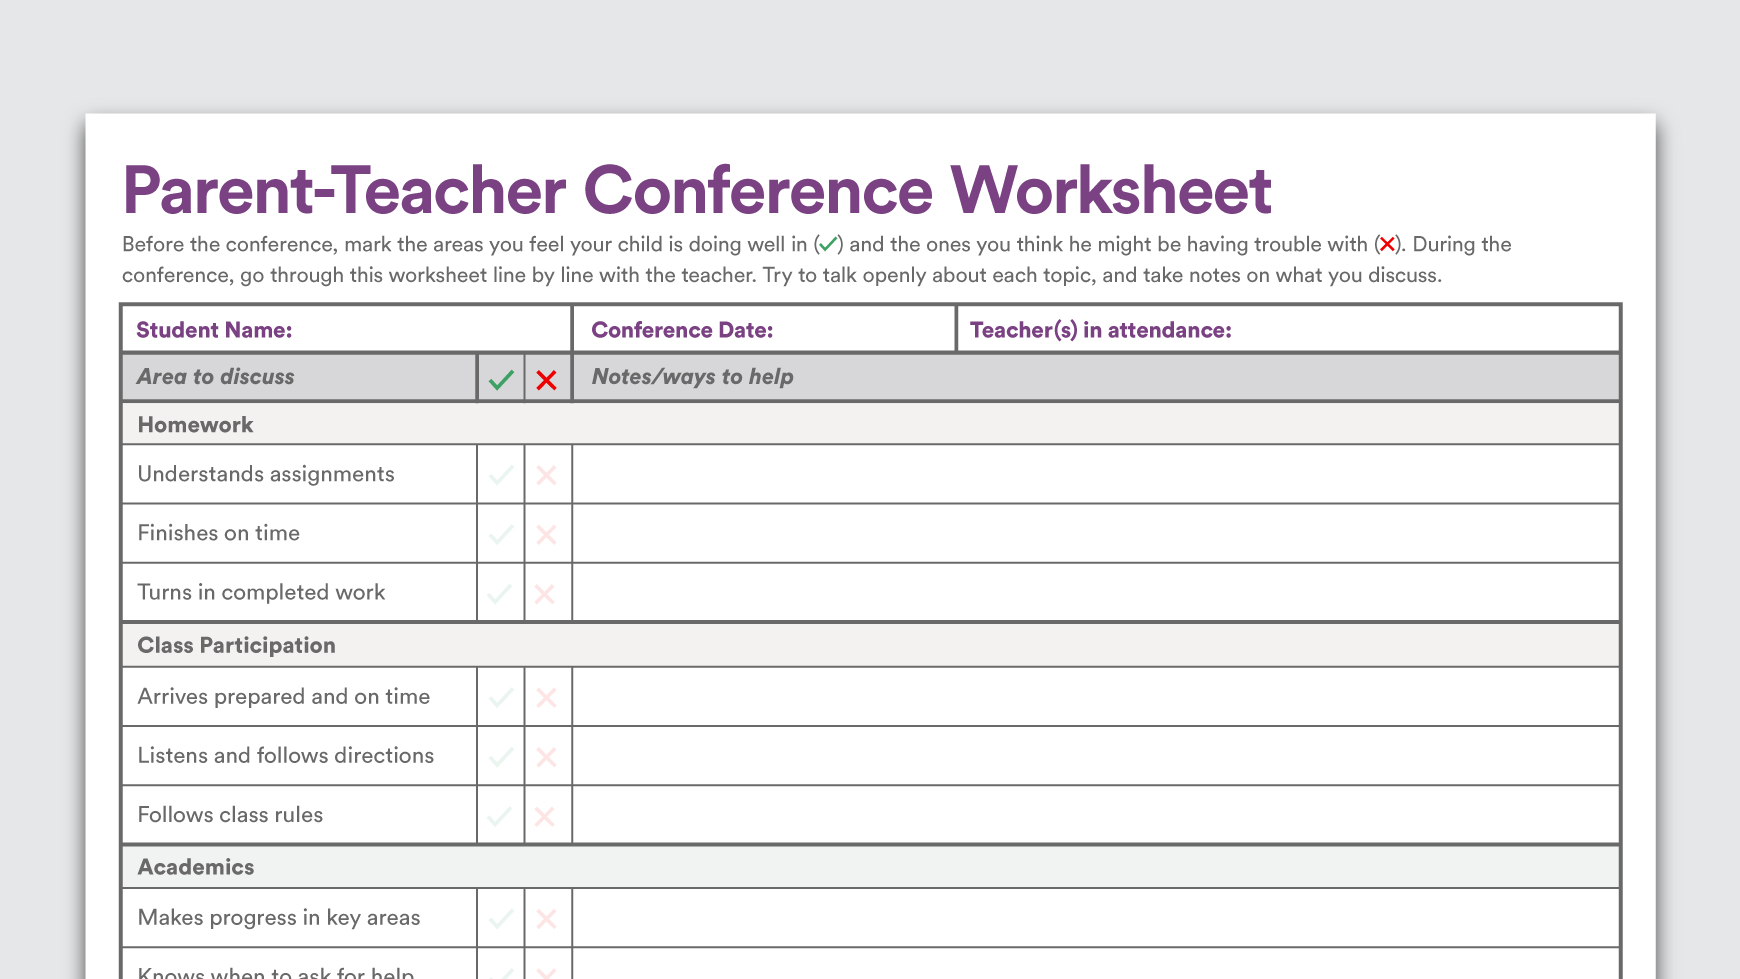 Printable Parent-Teacher Conference Worksheet - Free Printable Teacher Notes To Parents